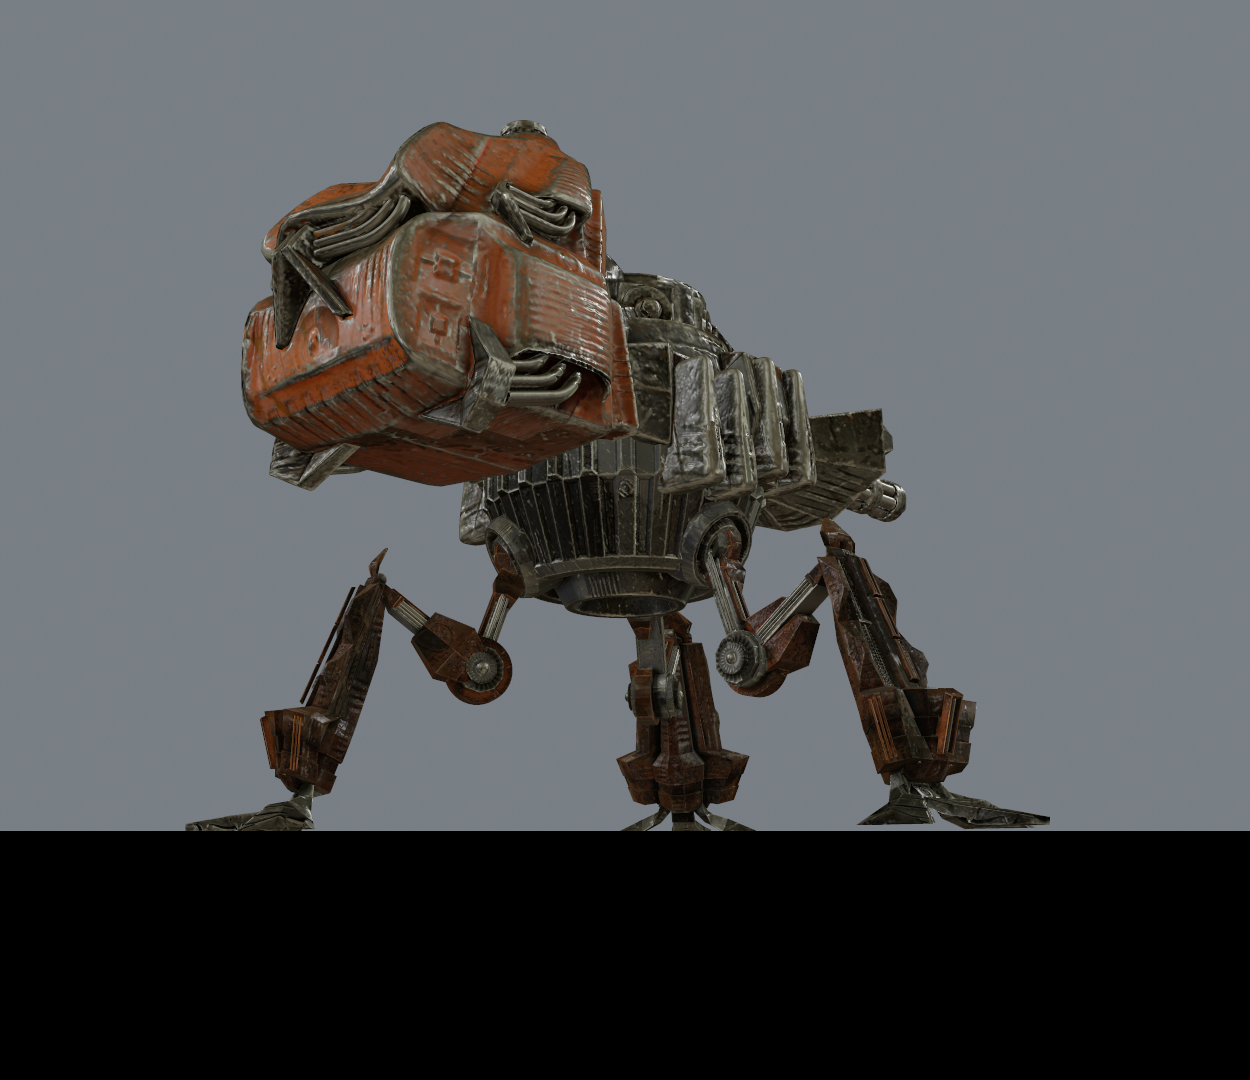 Low Poly Game Asset with PBR Textures (Mech2)